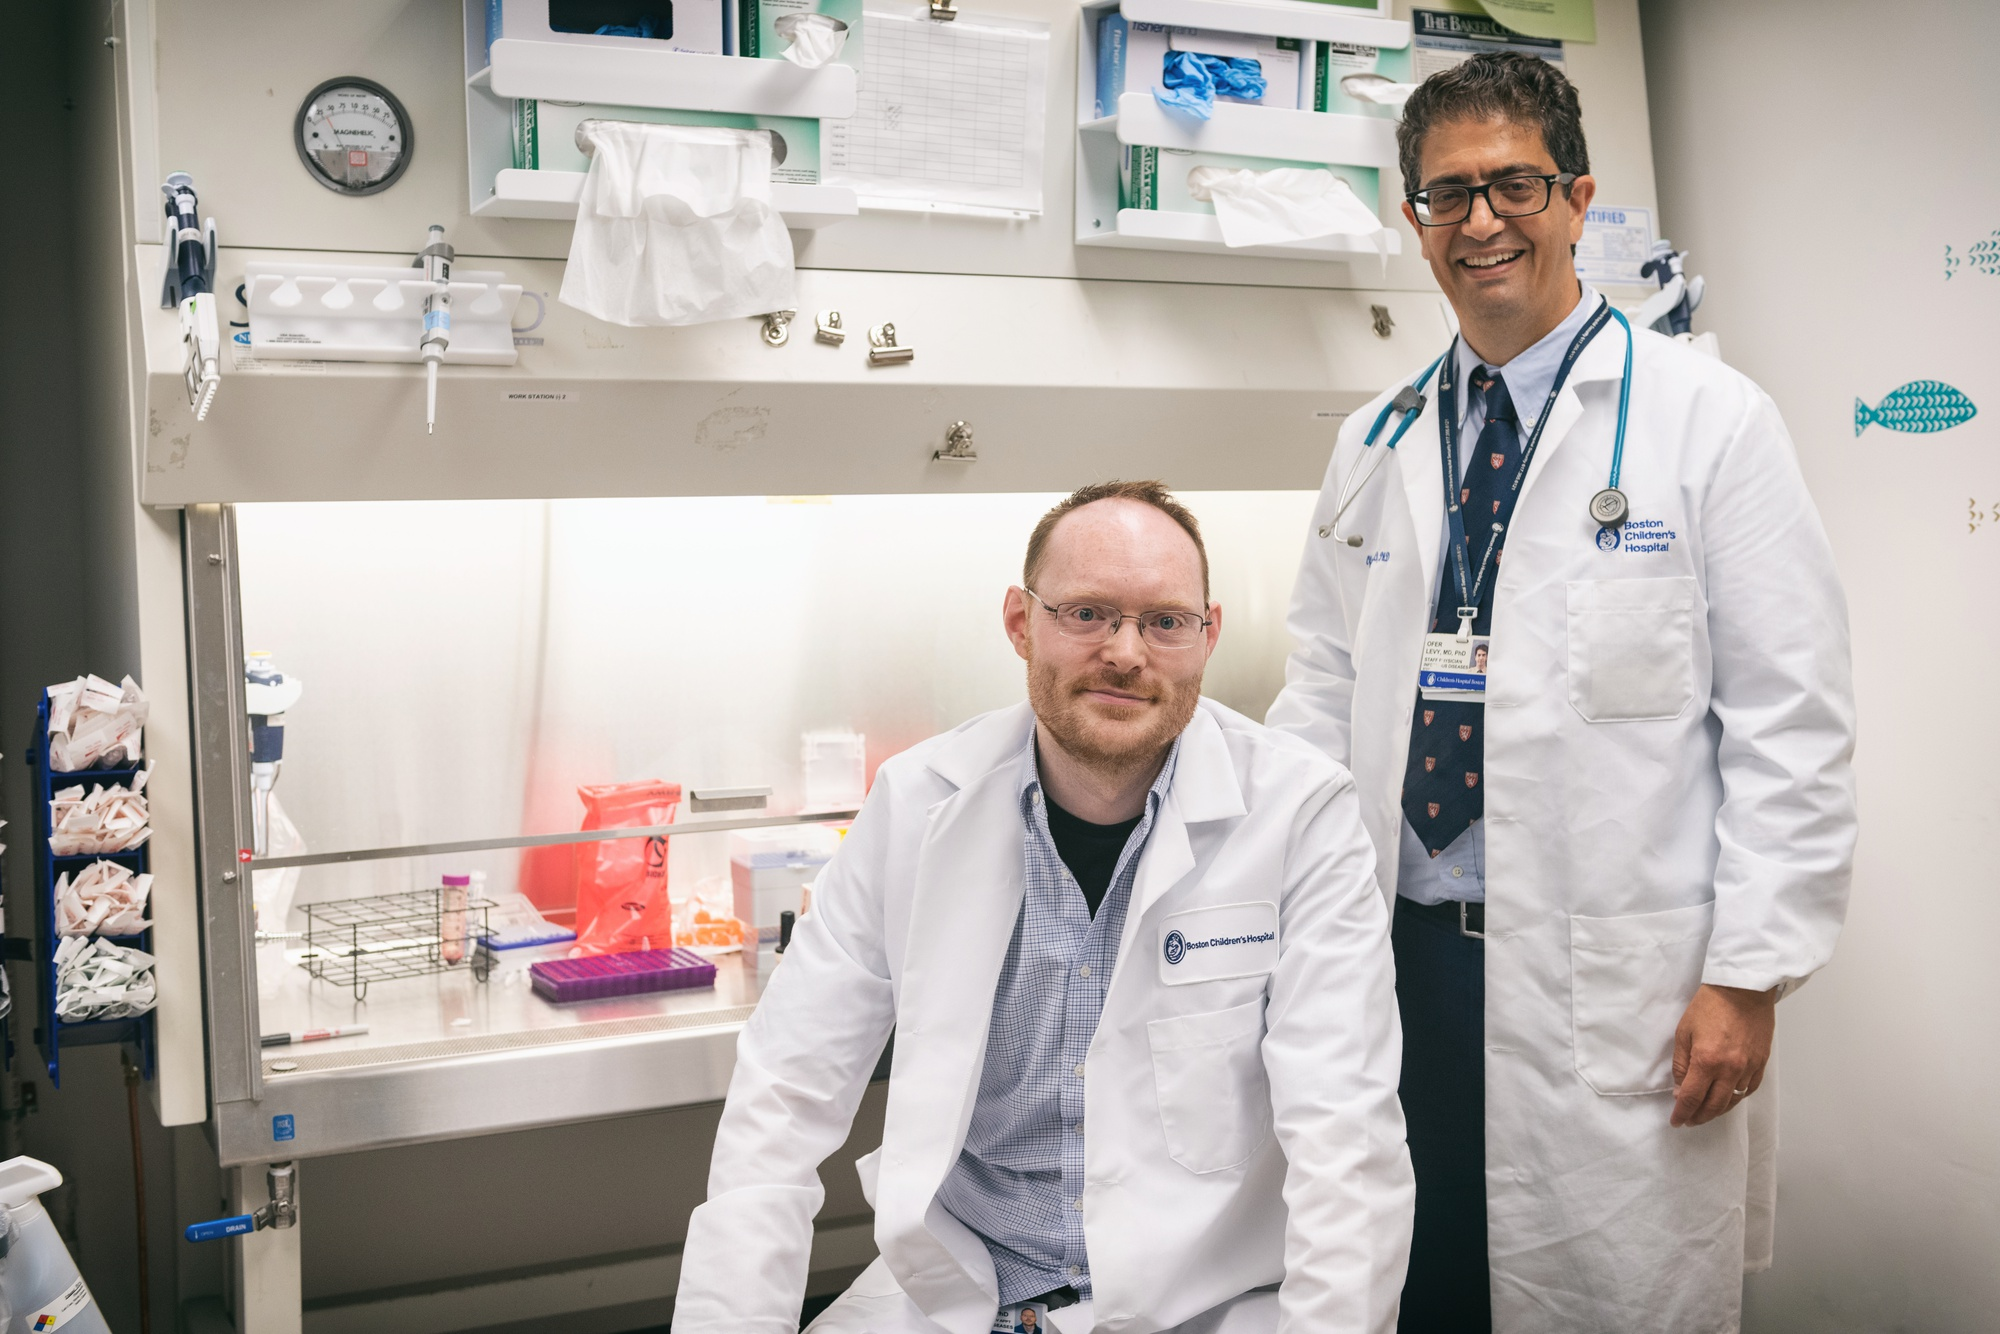 Doctors Ofer Levy and David J. Dowling lead the Adjuvant Discovery Program, which has focused its efforts on finding an adjuvanted vaccine for coronavirus. ""